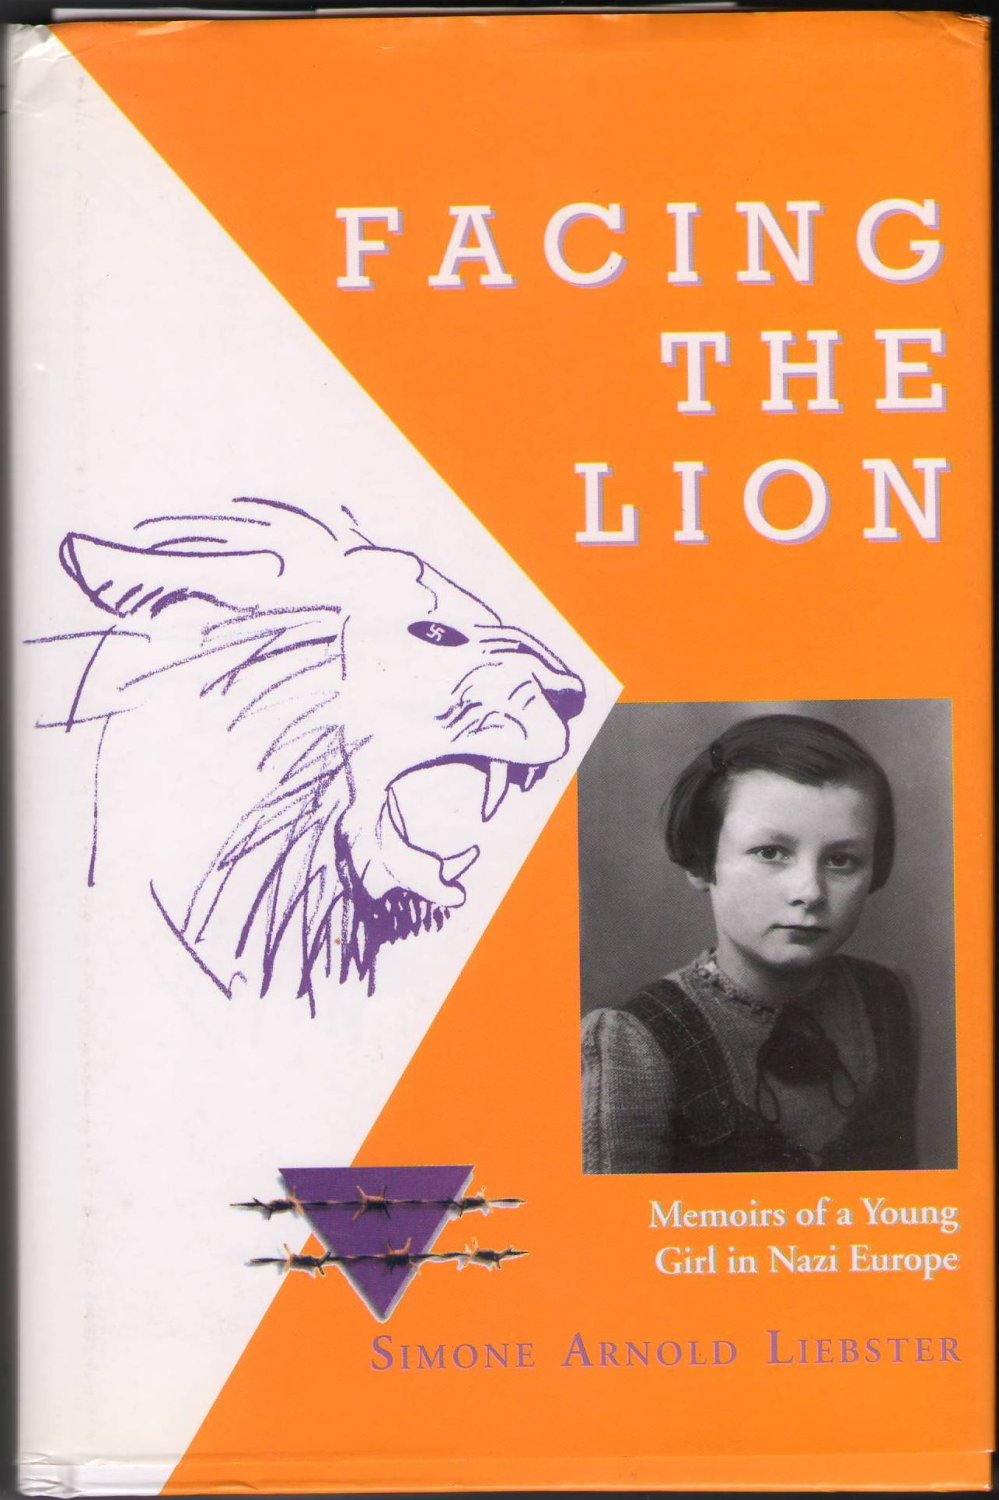 Facing The Lion by Simone Arnold Liebster Memoirs of a Young Girl in Nazi Europe